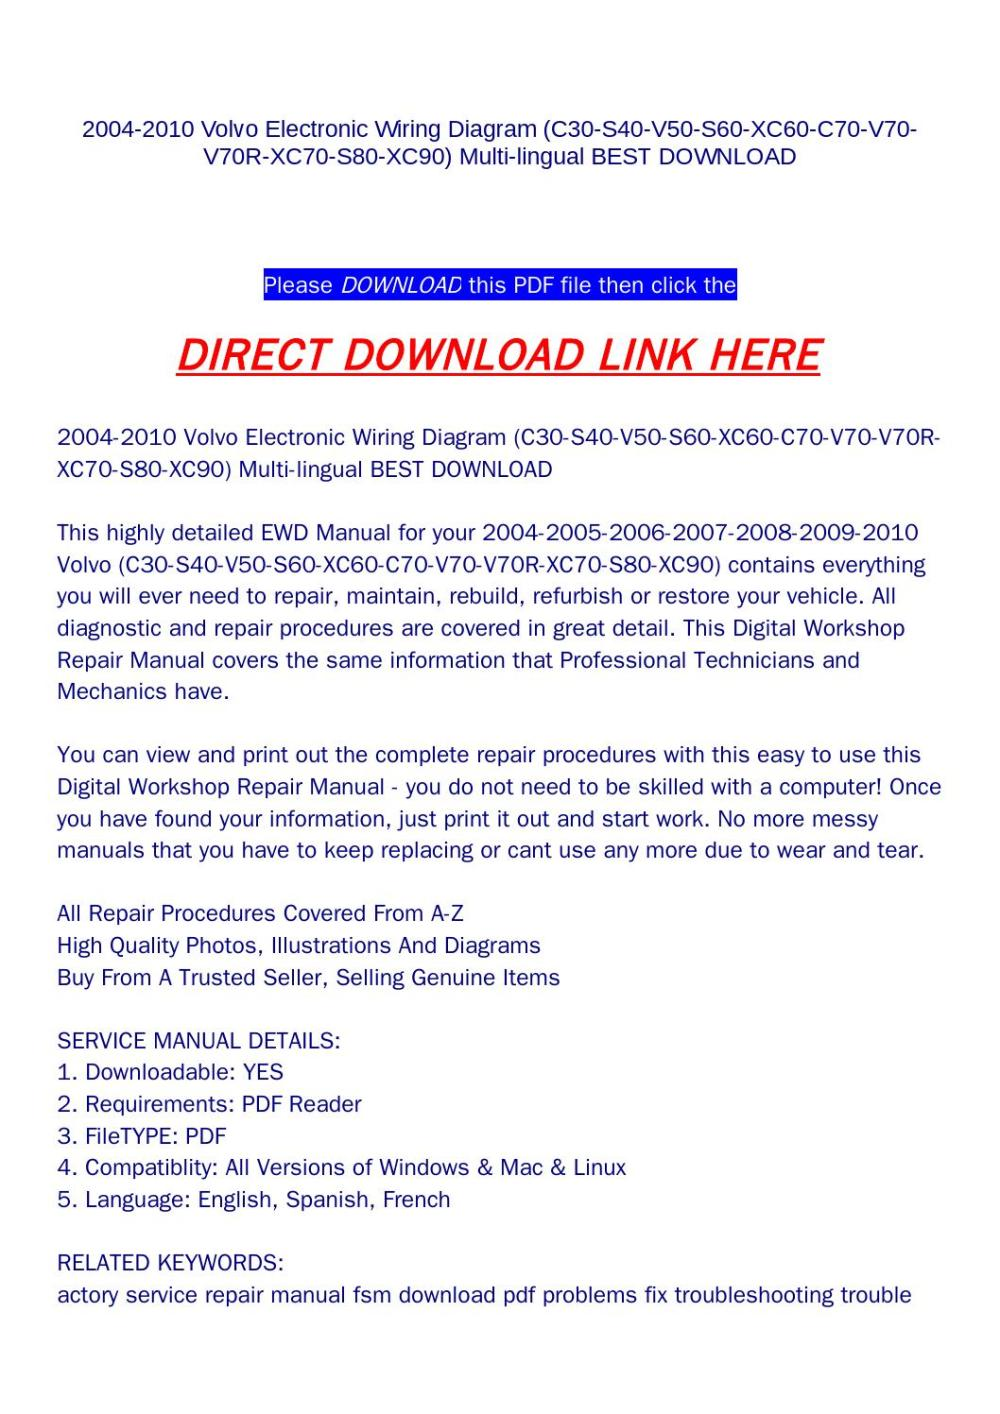 medium resolution of 2004 2010 volvo electronic wiring diagram c30 s40 v50 s60 xc60 c70 v70 v70r xc70 s80 xc90 multi li by yfg qualityservicemanual com issuu